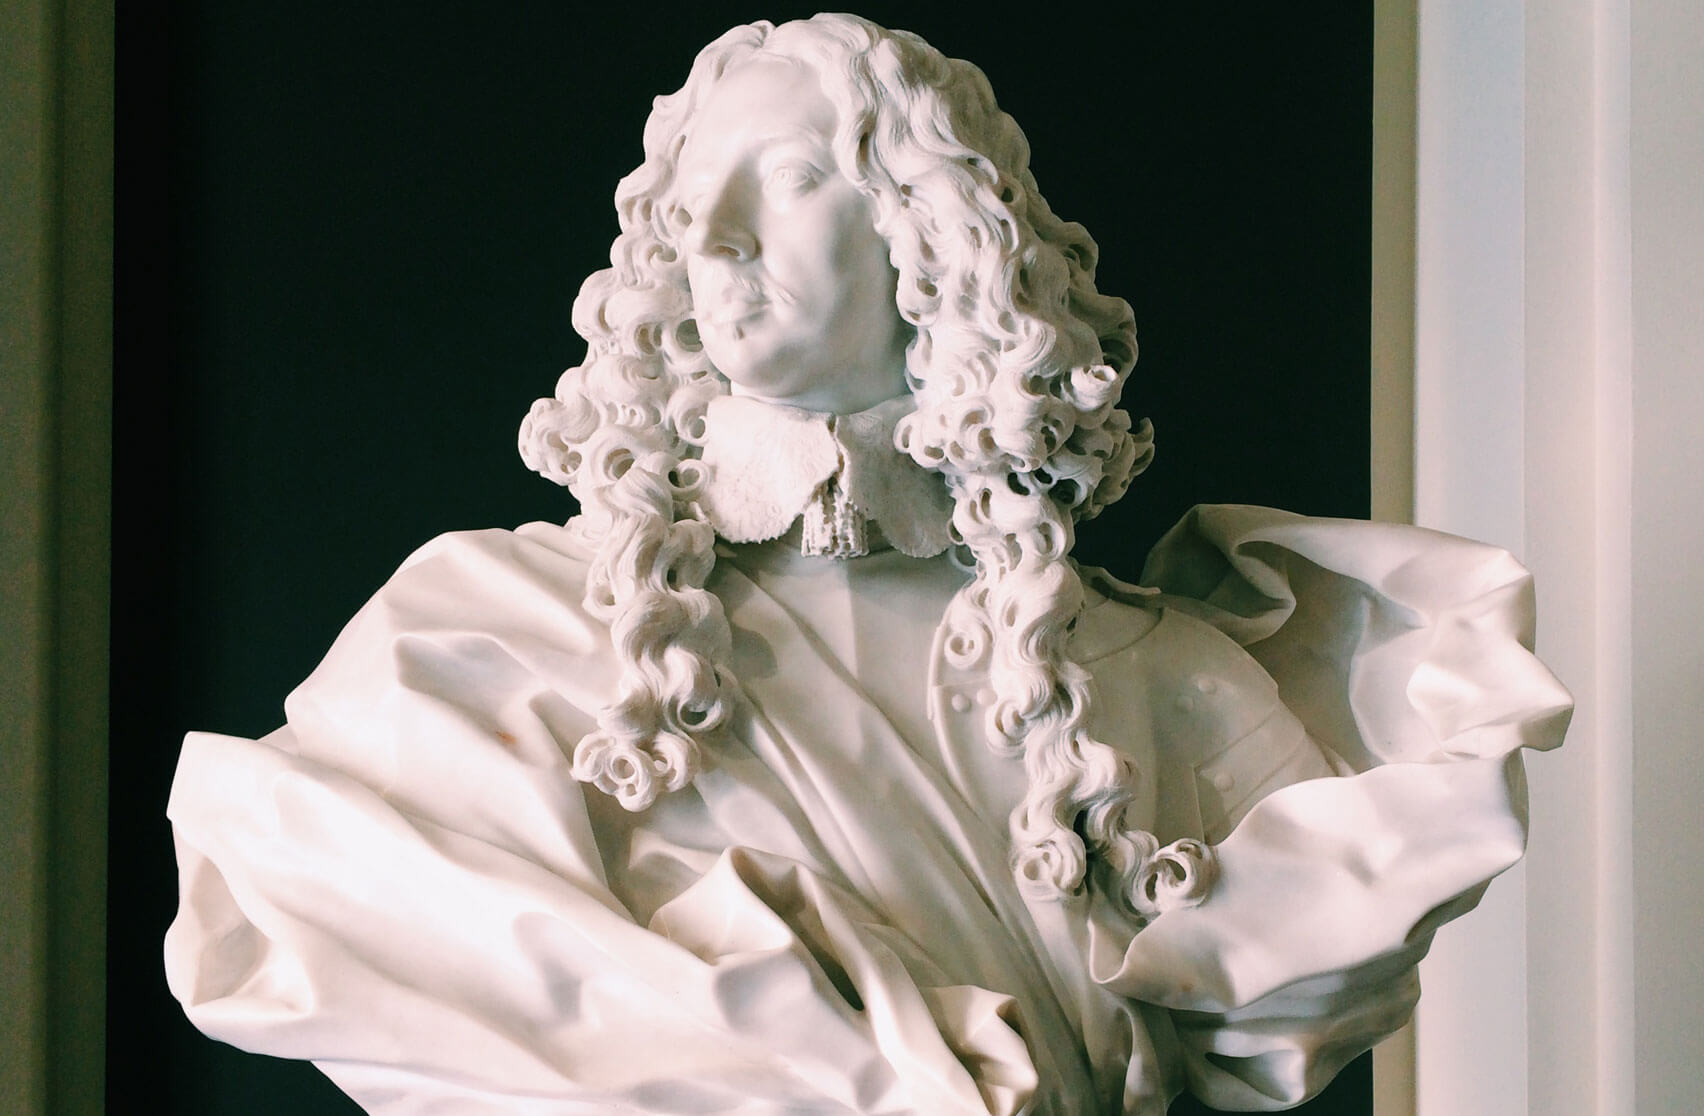 Estense Gallery in Modena - the beautiful marble bust of Francesco I d'Este by Bernini